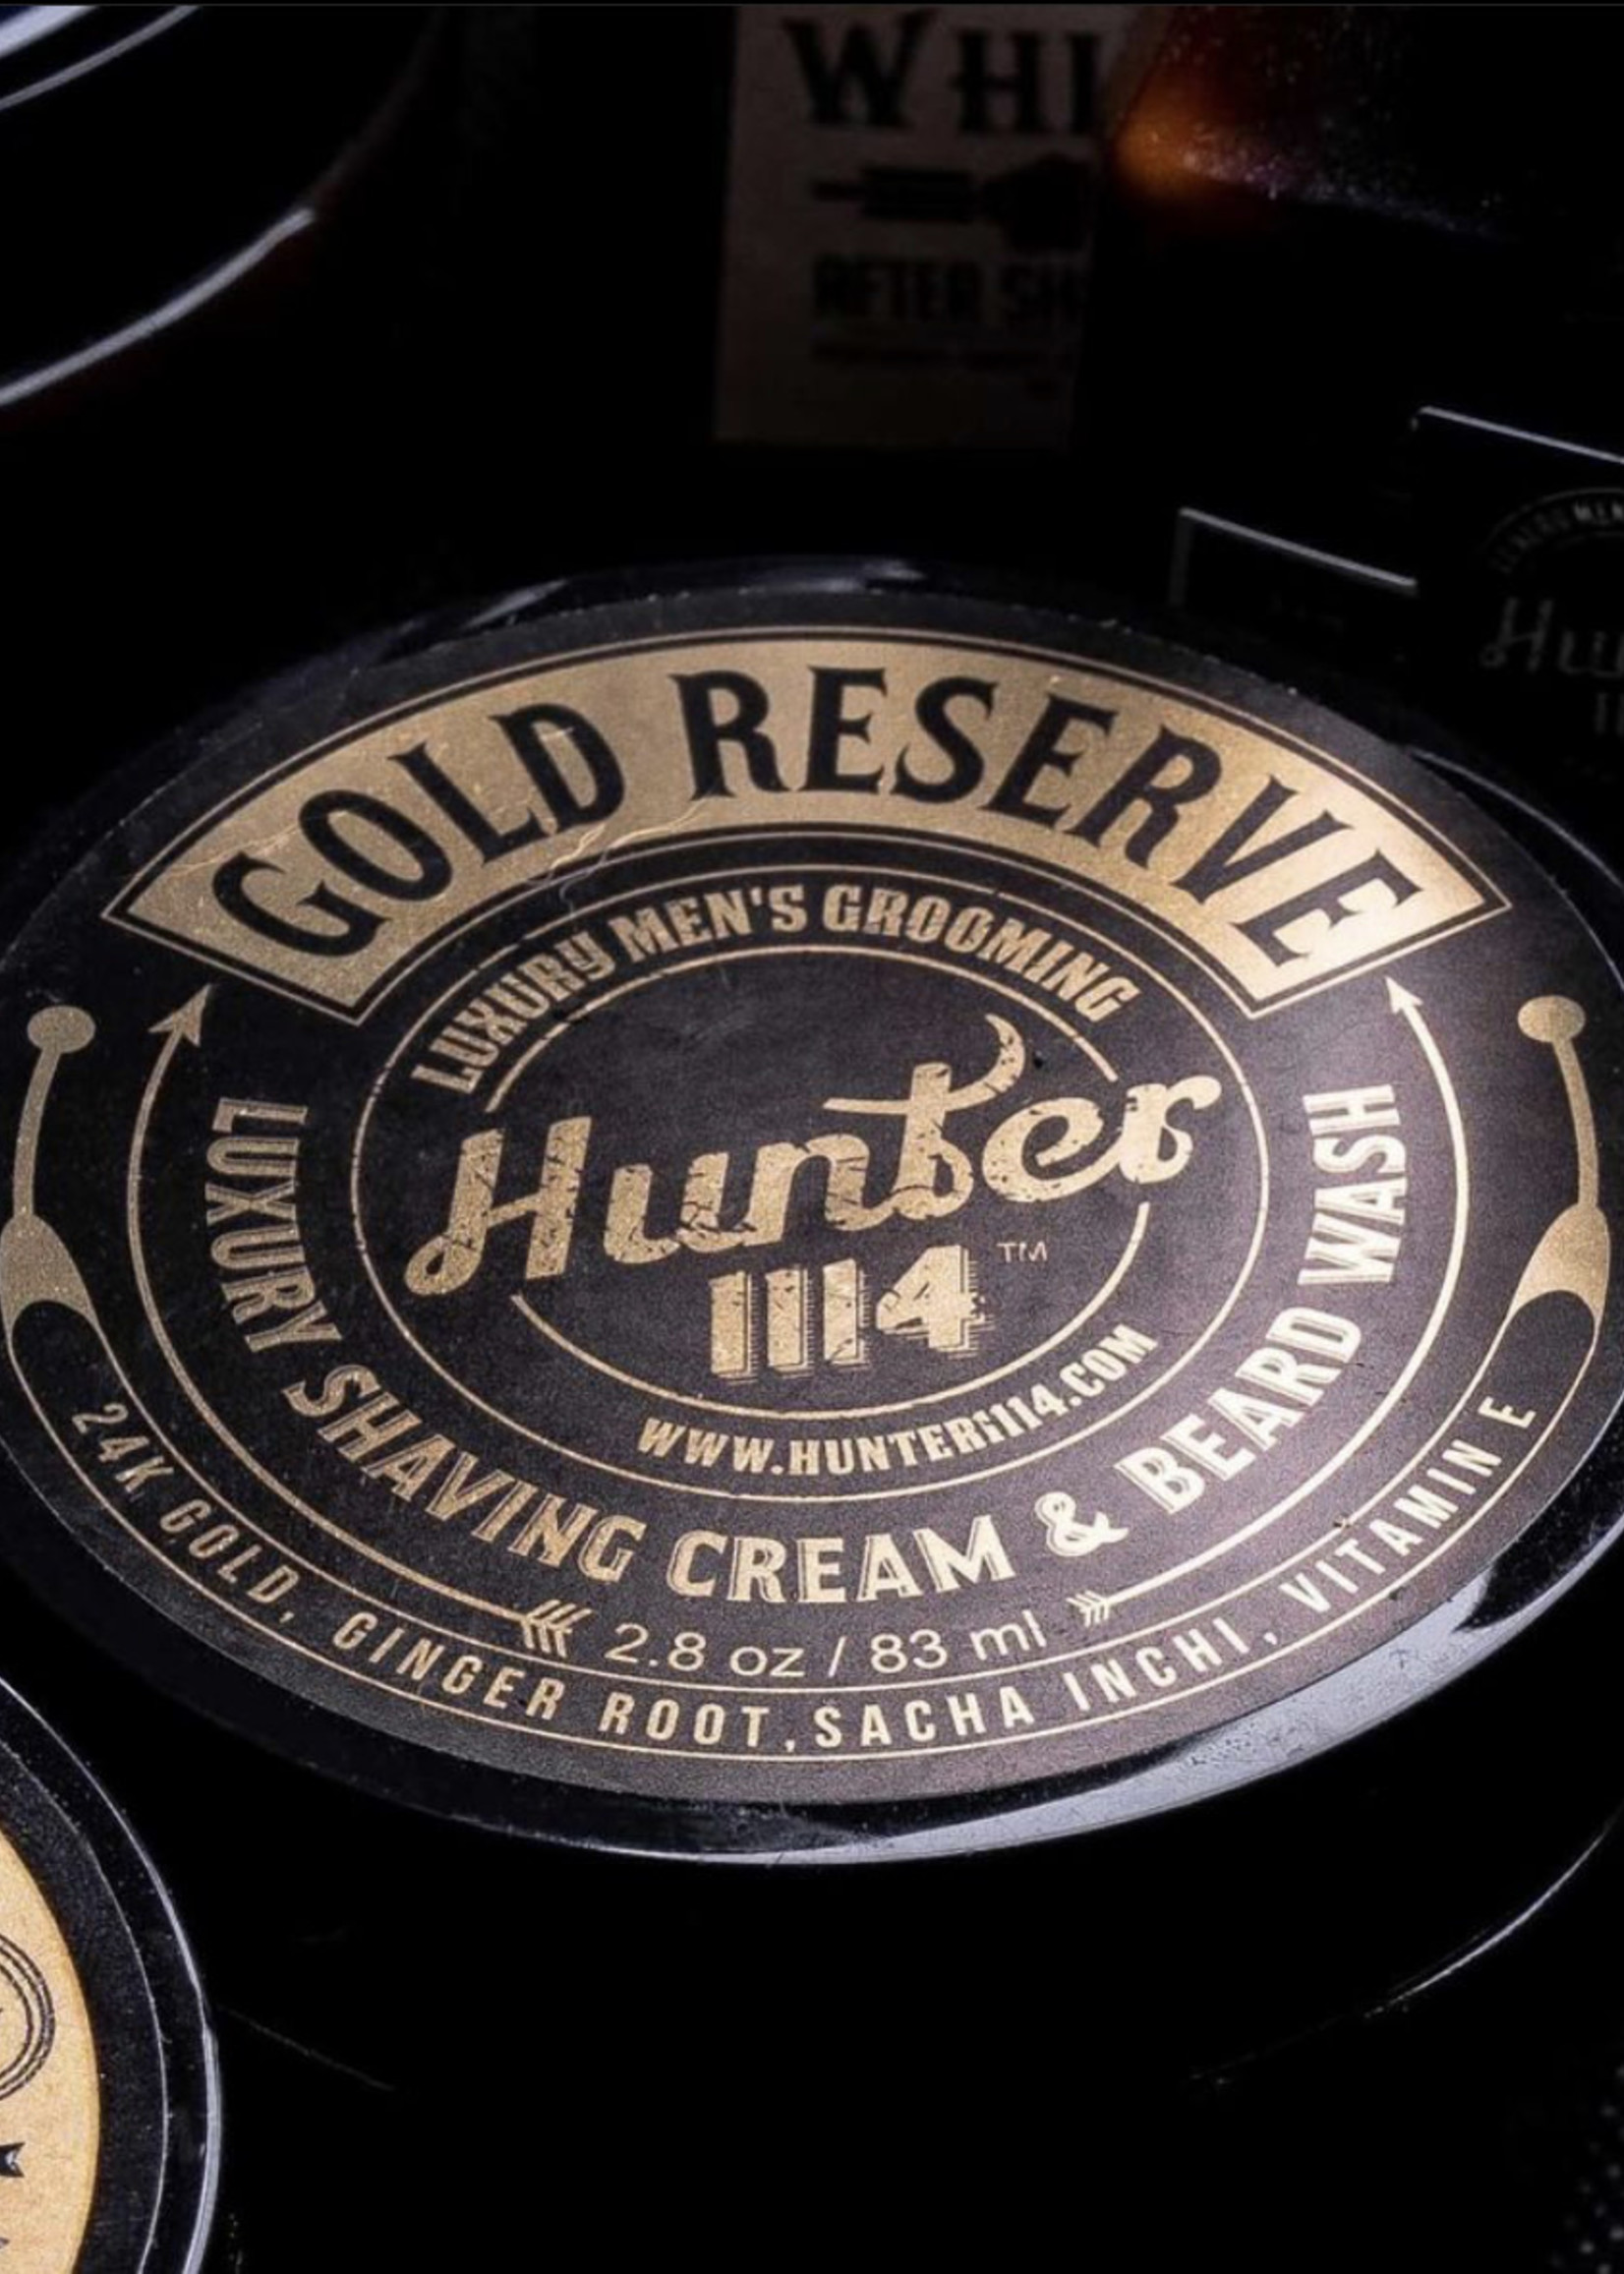 Hunter1114 Hunter 1114- Gold Reserve-2.8oz